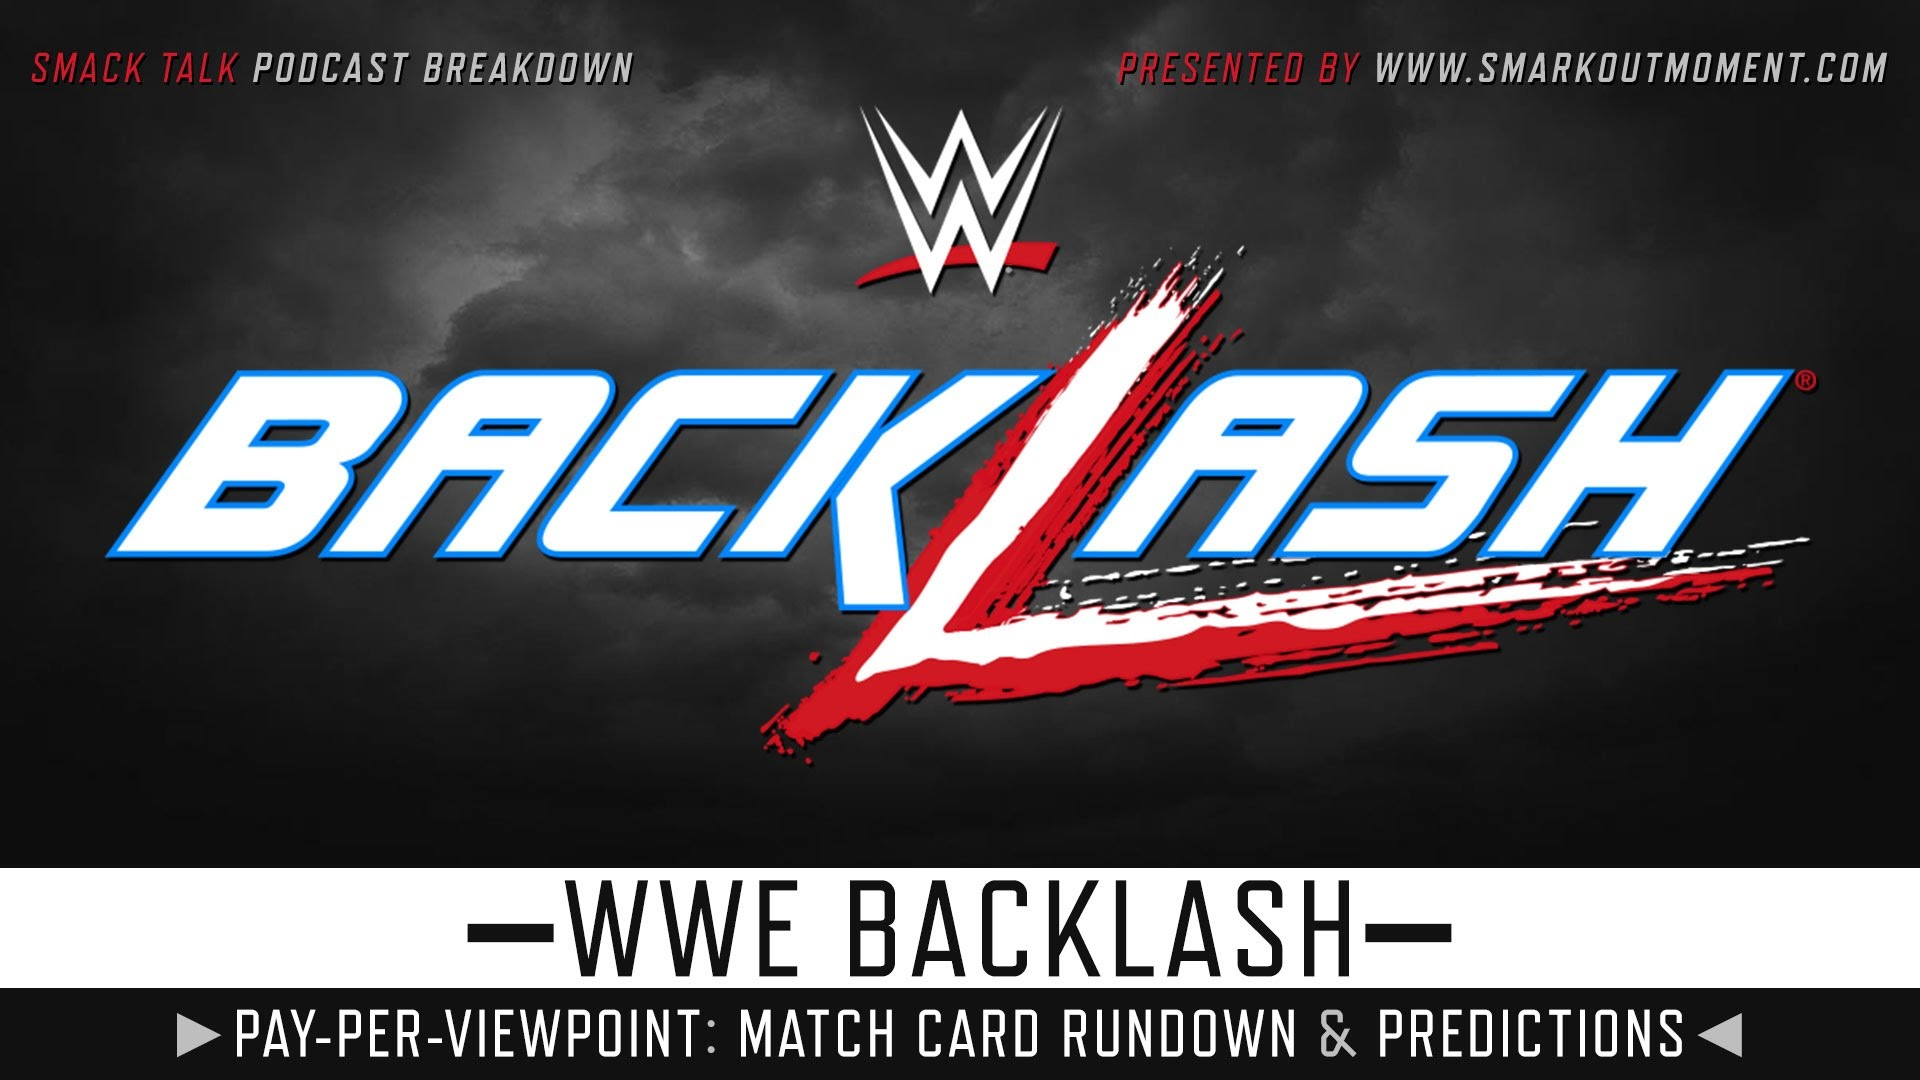 WWE Backlash 2018 spoilers podcast